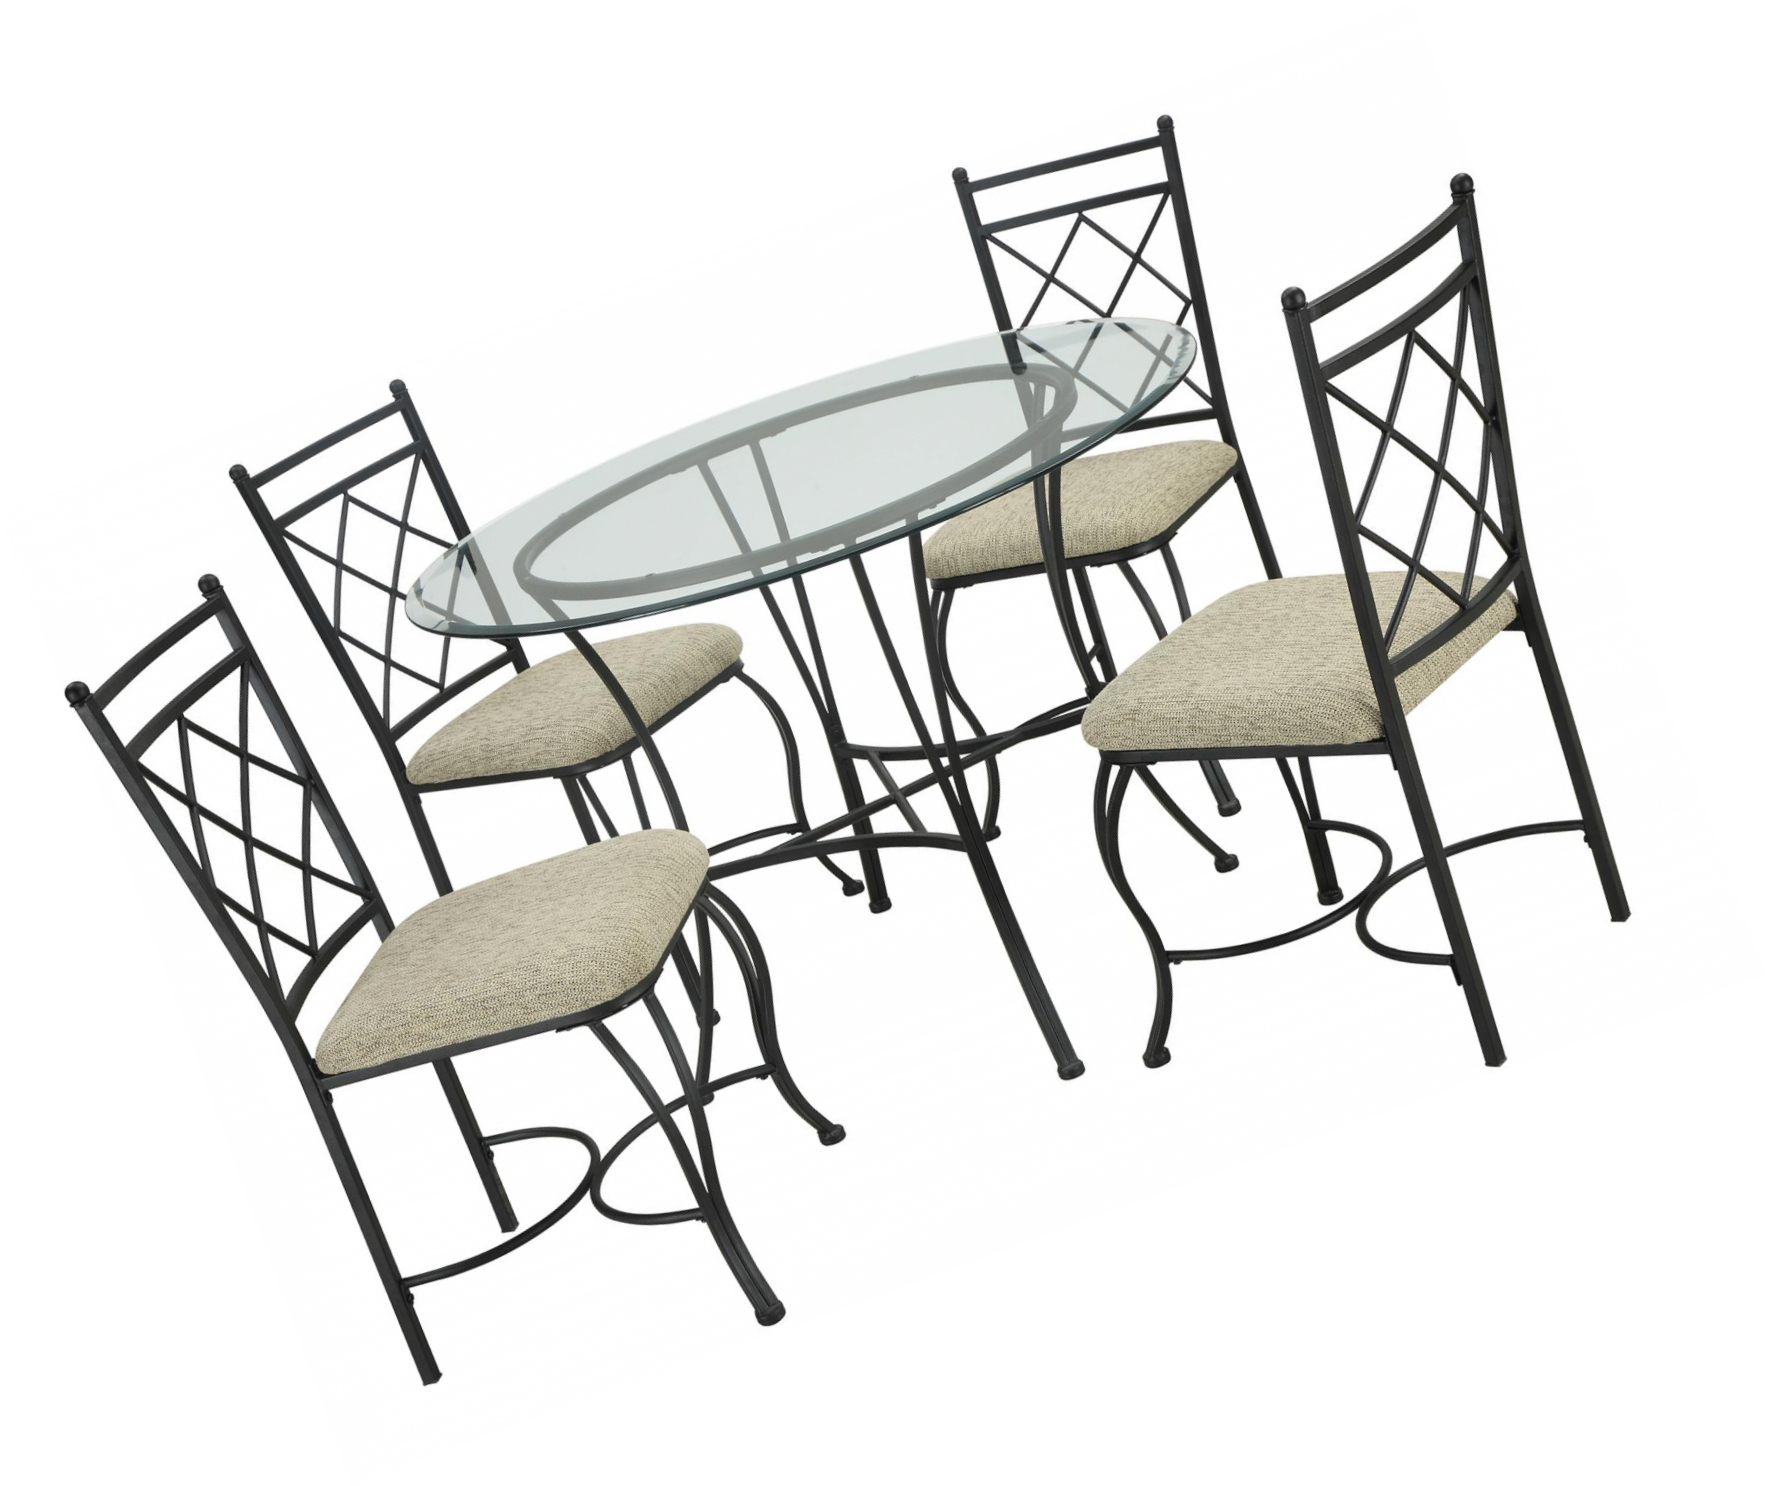 Dining Room Table Set Round Glass Kitchen Tables And Chairs Sets Modern 5-Piece